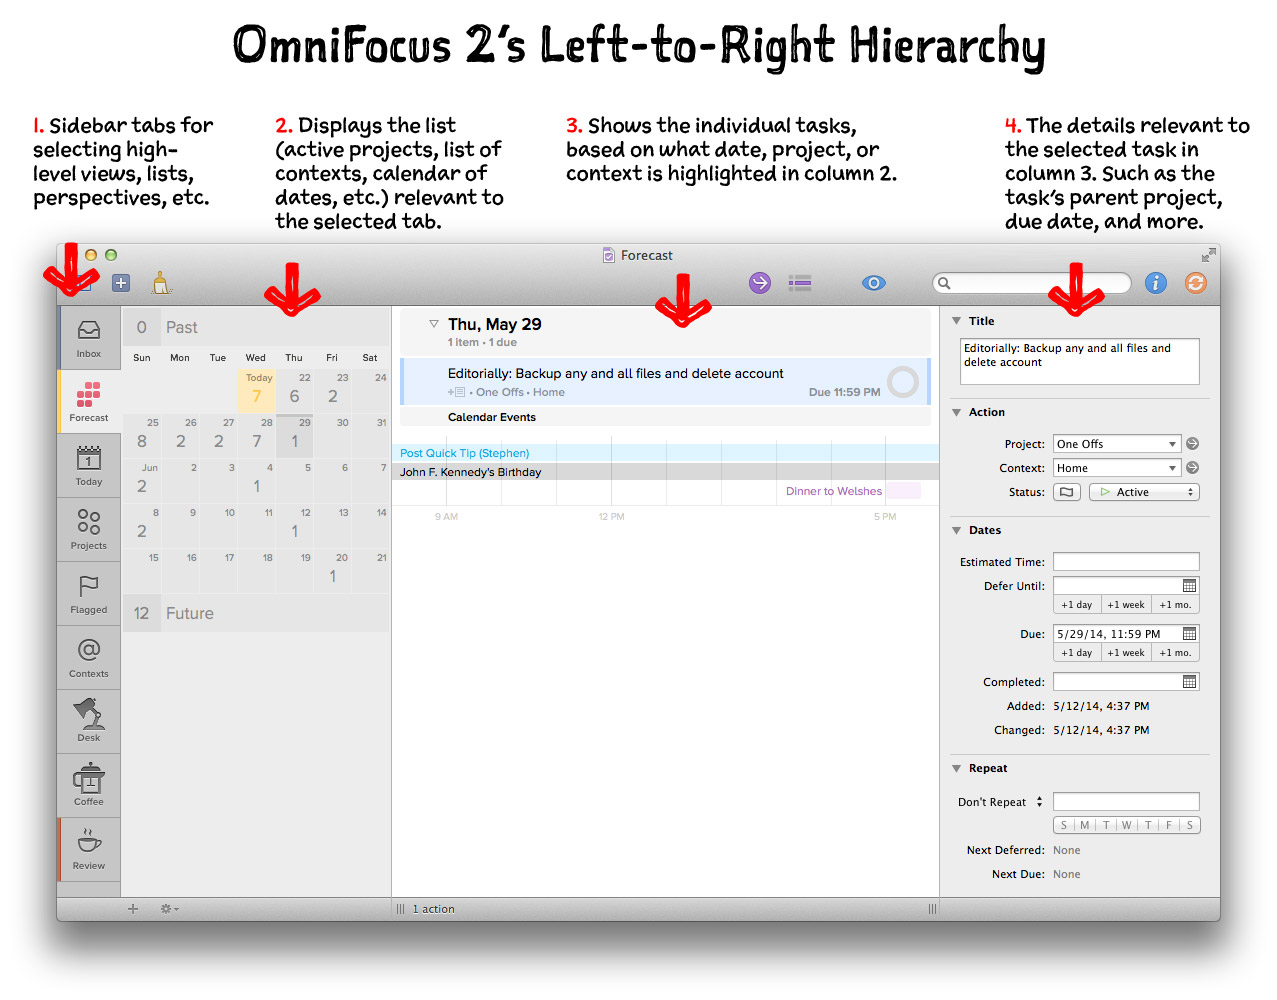 OmniFocus 2 - the left-to-right hierarchy